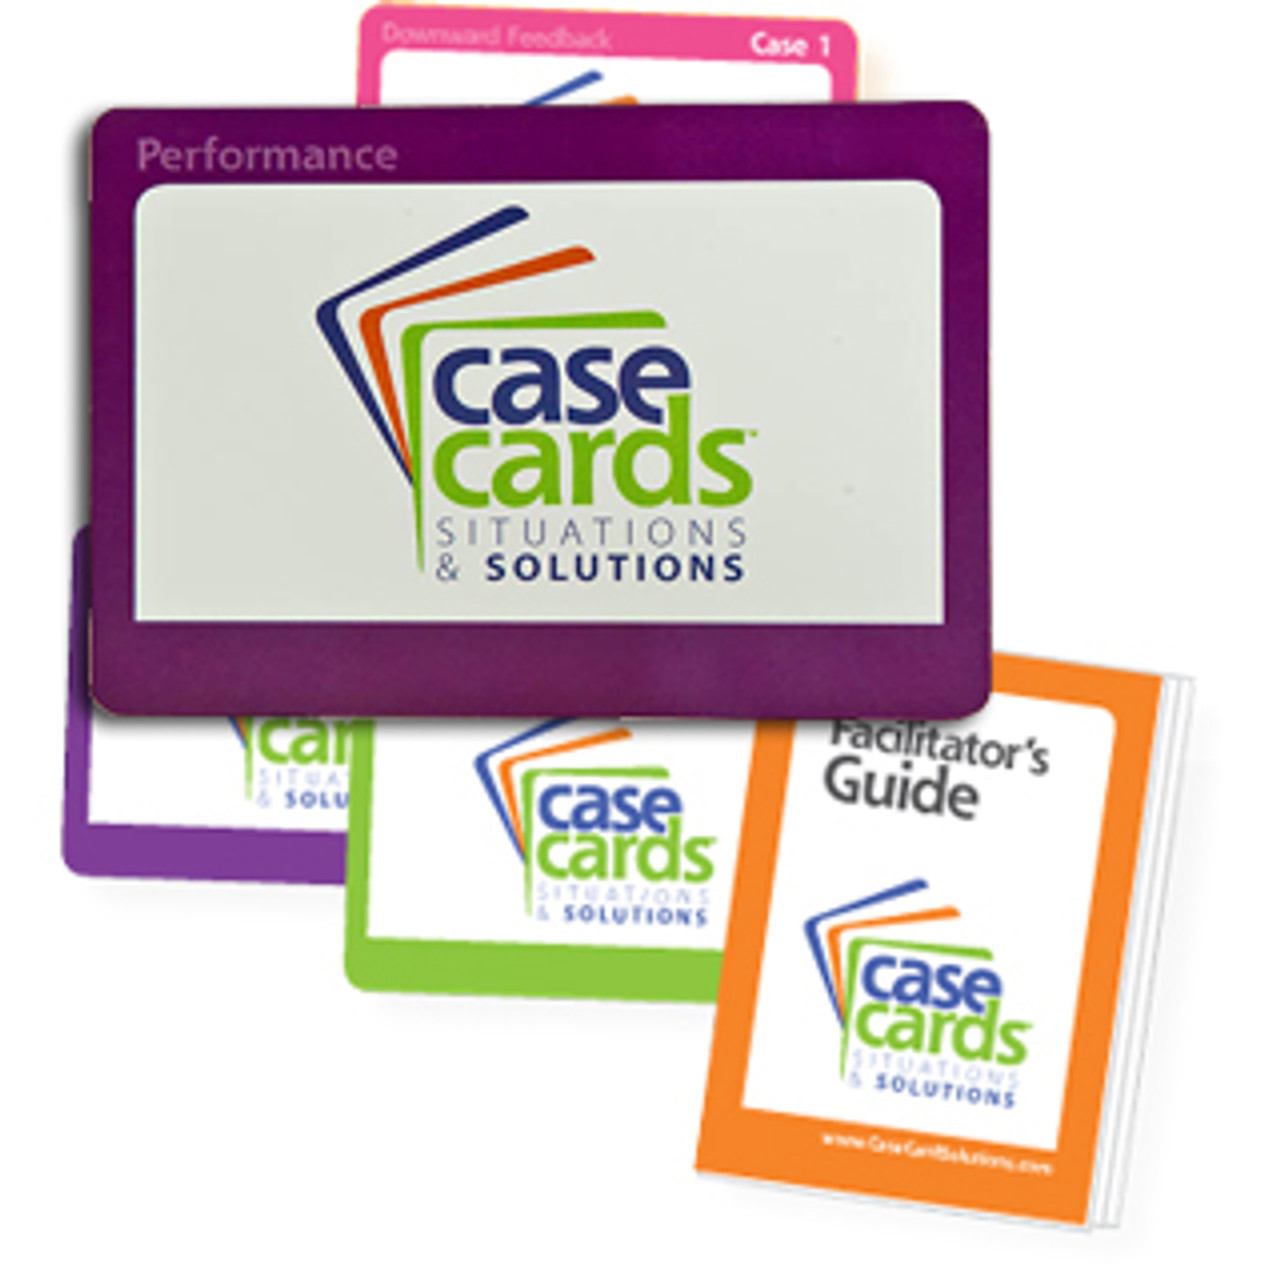 CaseCards - Performance Management